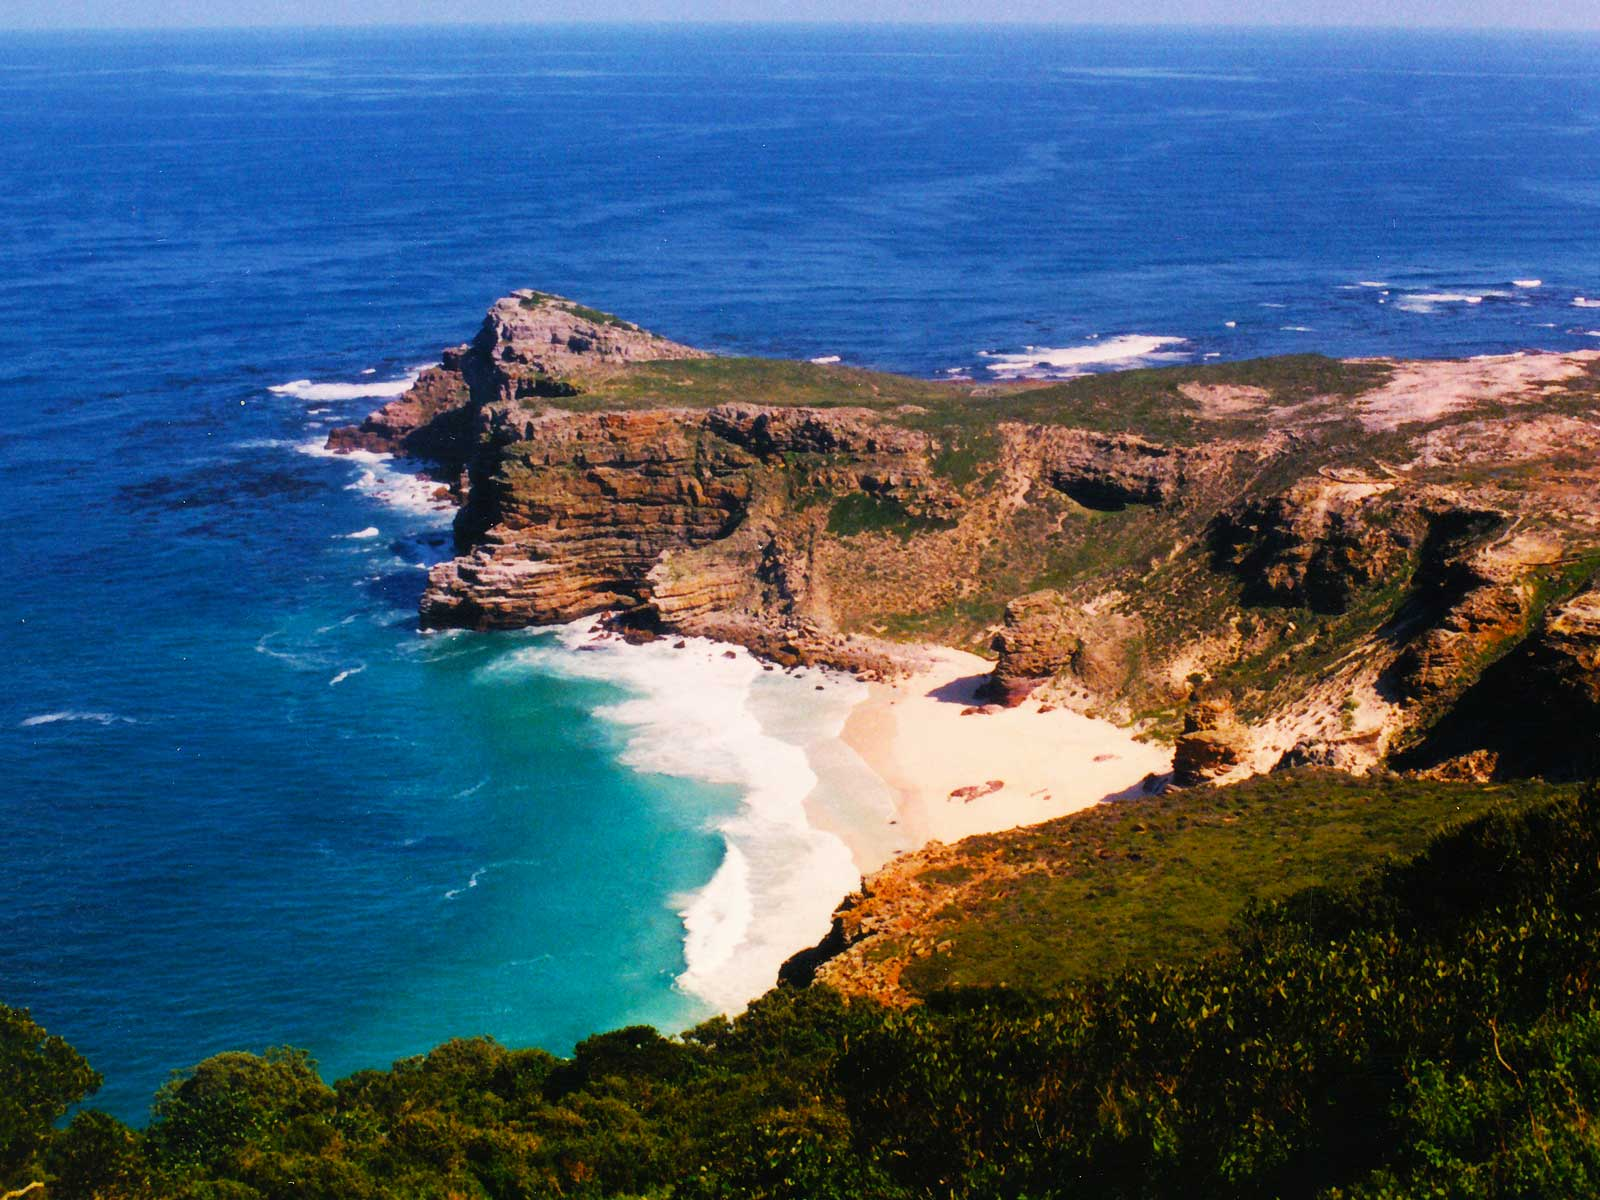 Cape of Good Hope   Steven Andrew Martin   South Africa Photo Journal   School for International Training   SIT Study Abroad